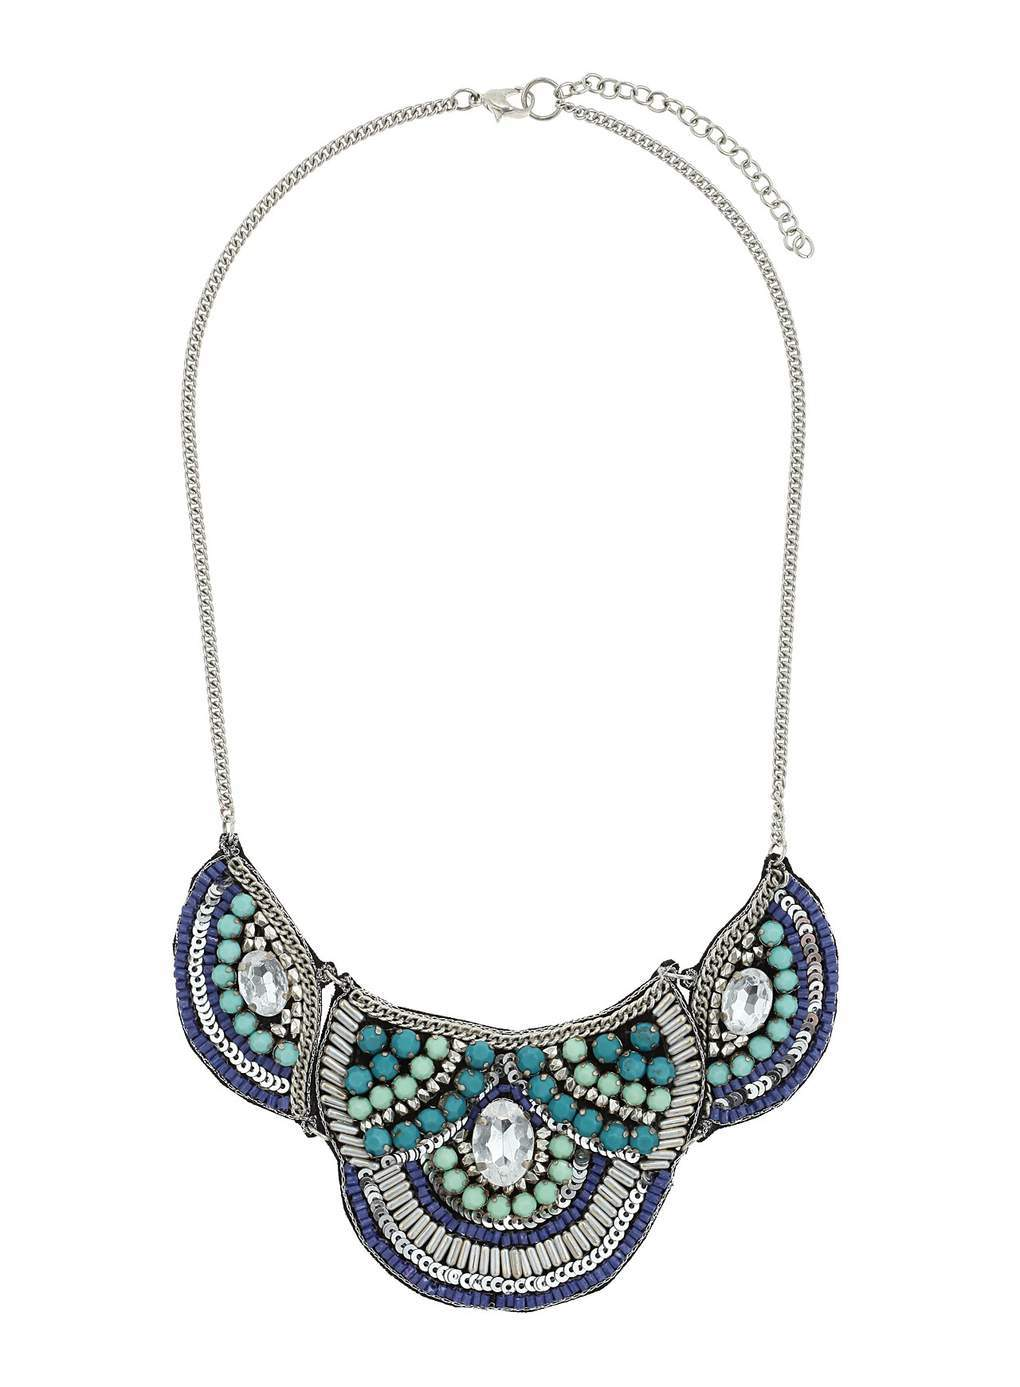 Blue Beaded Fabric Necklace - secondary colour: silver; occasions: evening, occasion; predominant colour: multicoloured; length: mid; size: large/oversized; material: chain/metal; finish: metallic; embellishment: beading; style: bib/statement; season: s/s 2014; multicoloured: multicoloured